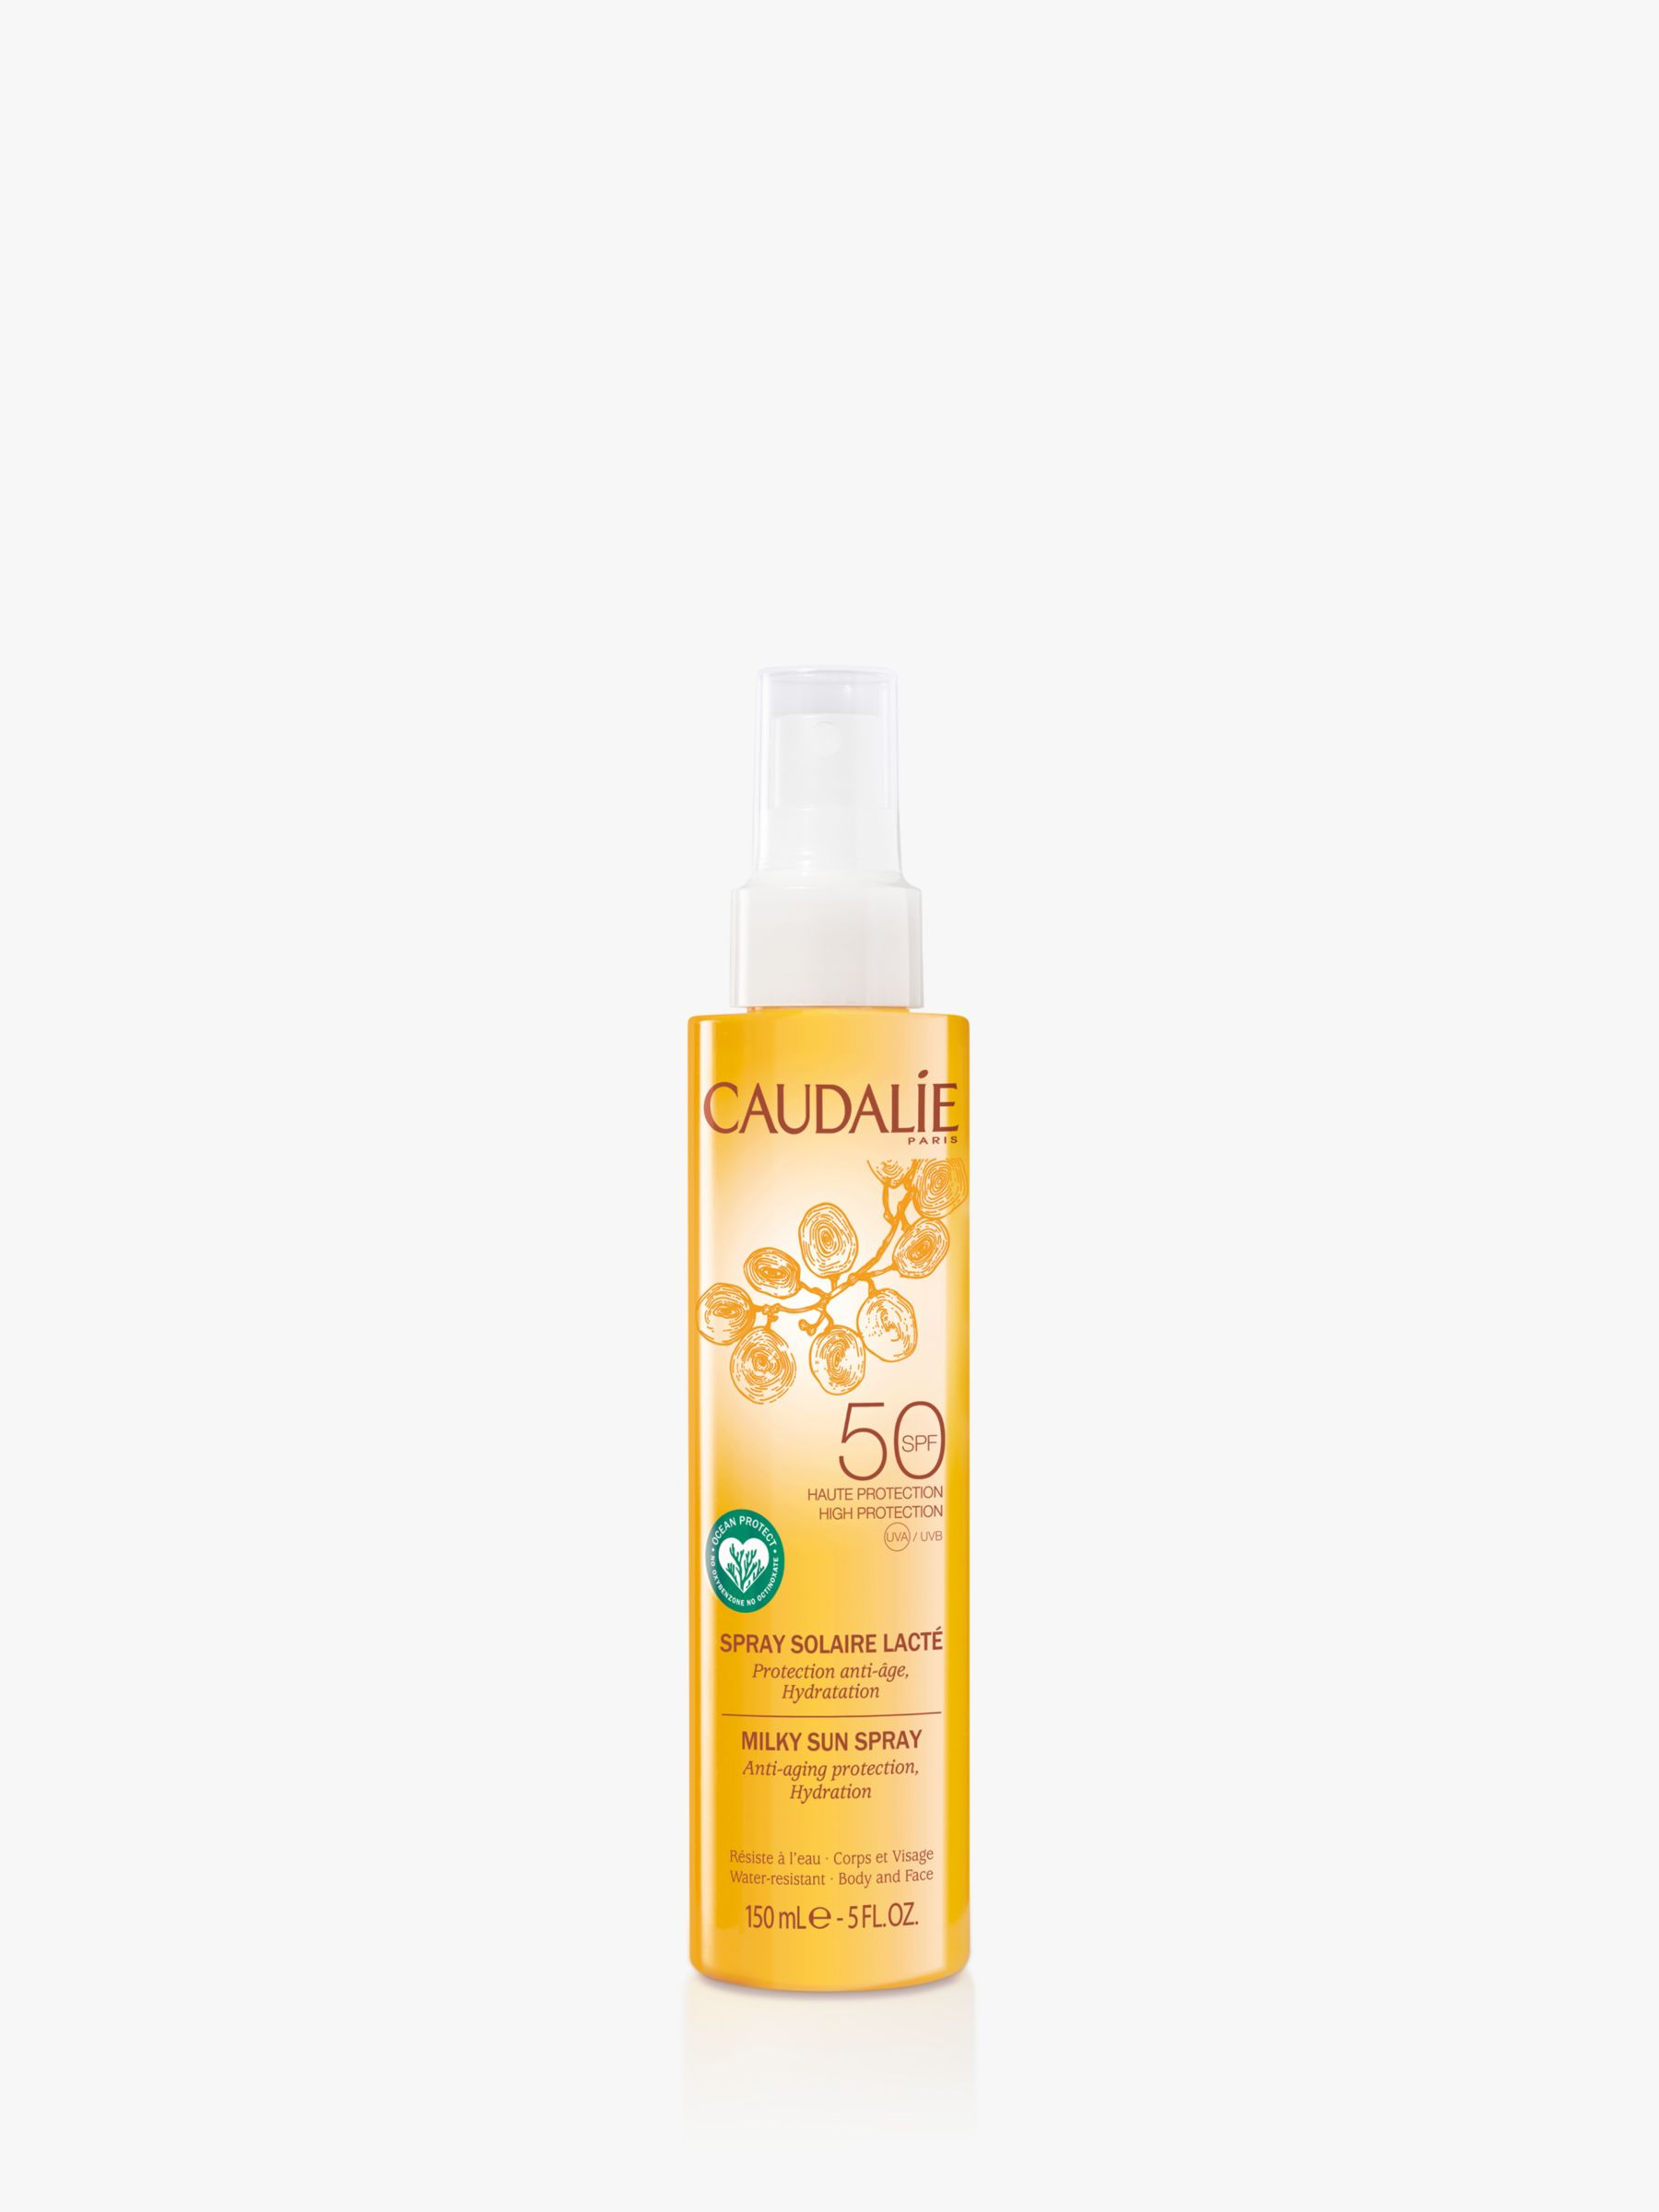 Caudalie Caudalie Milky Sun Spray SPF 50, 150ml